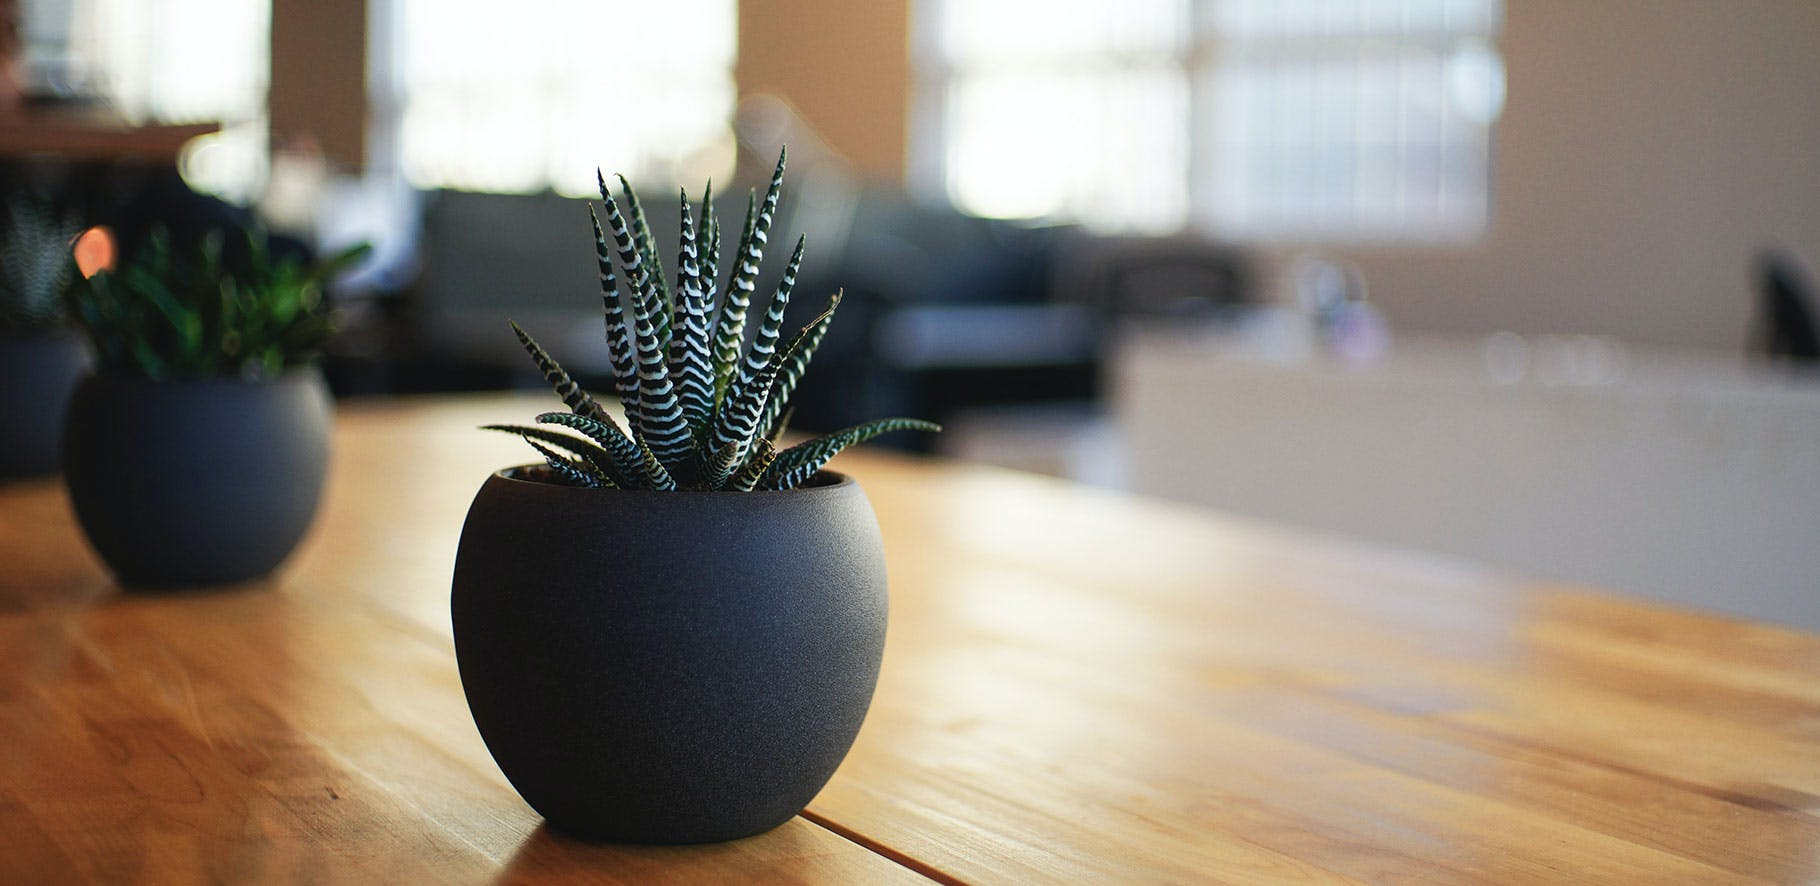 small cactus sitting on a table with a blurred background